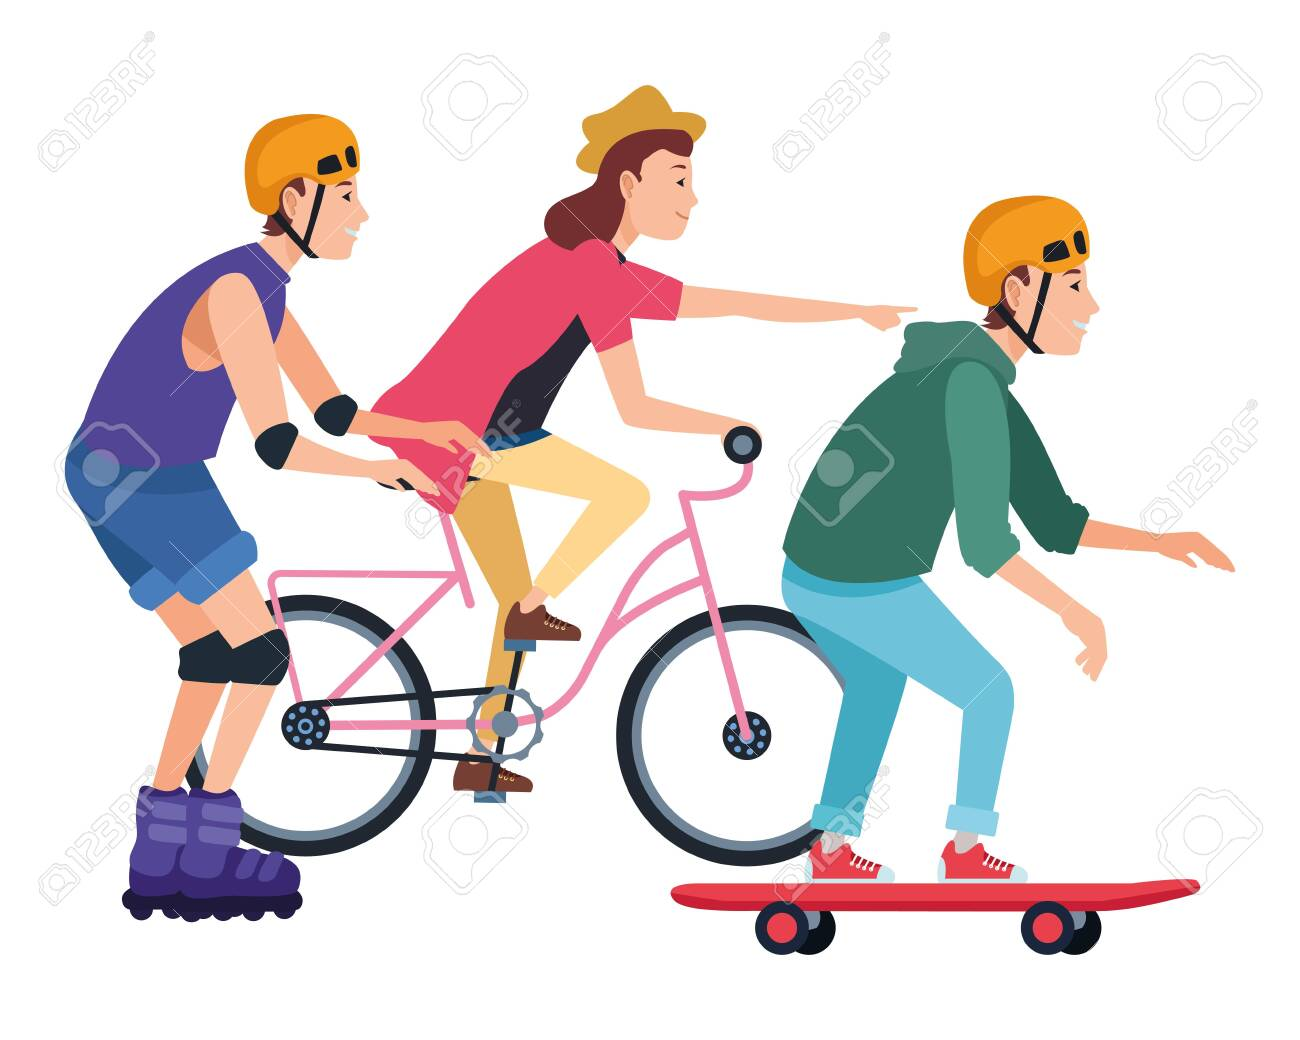 Young people riding with bicycles skateboard and rolling skates weating accesories ,vector illustration graphic design. - 128996117